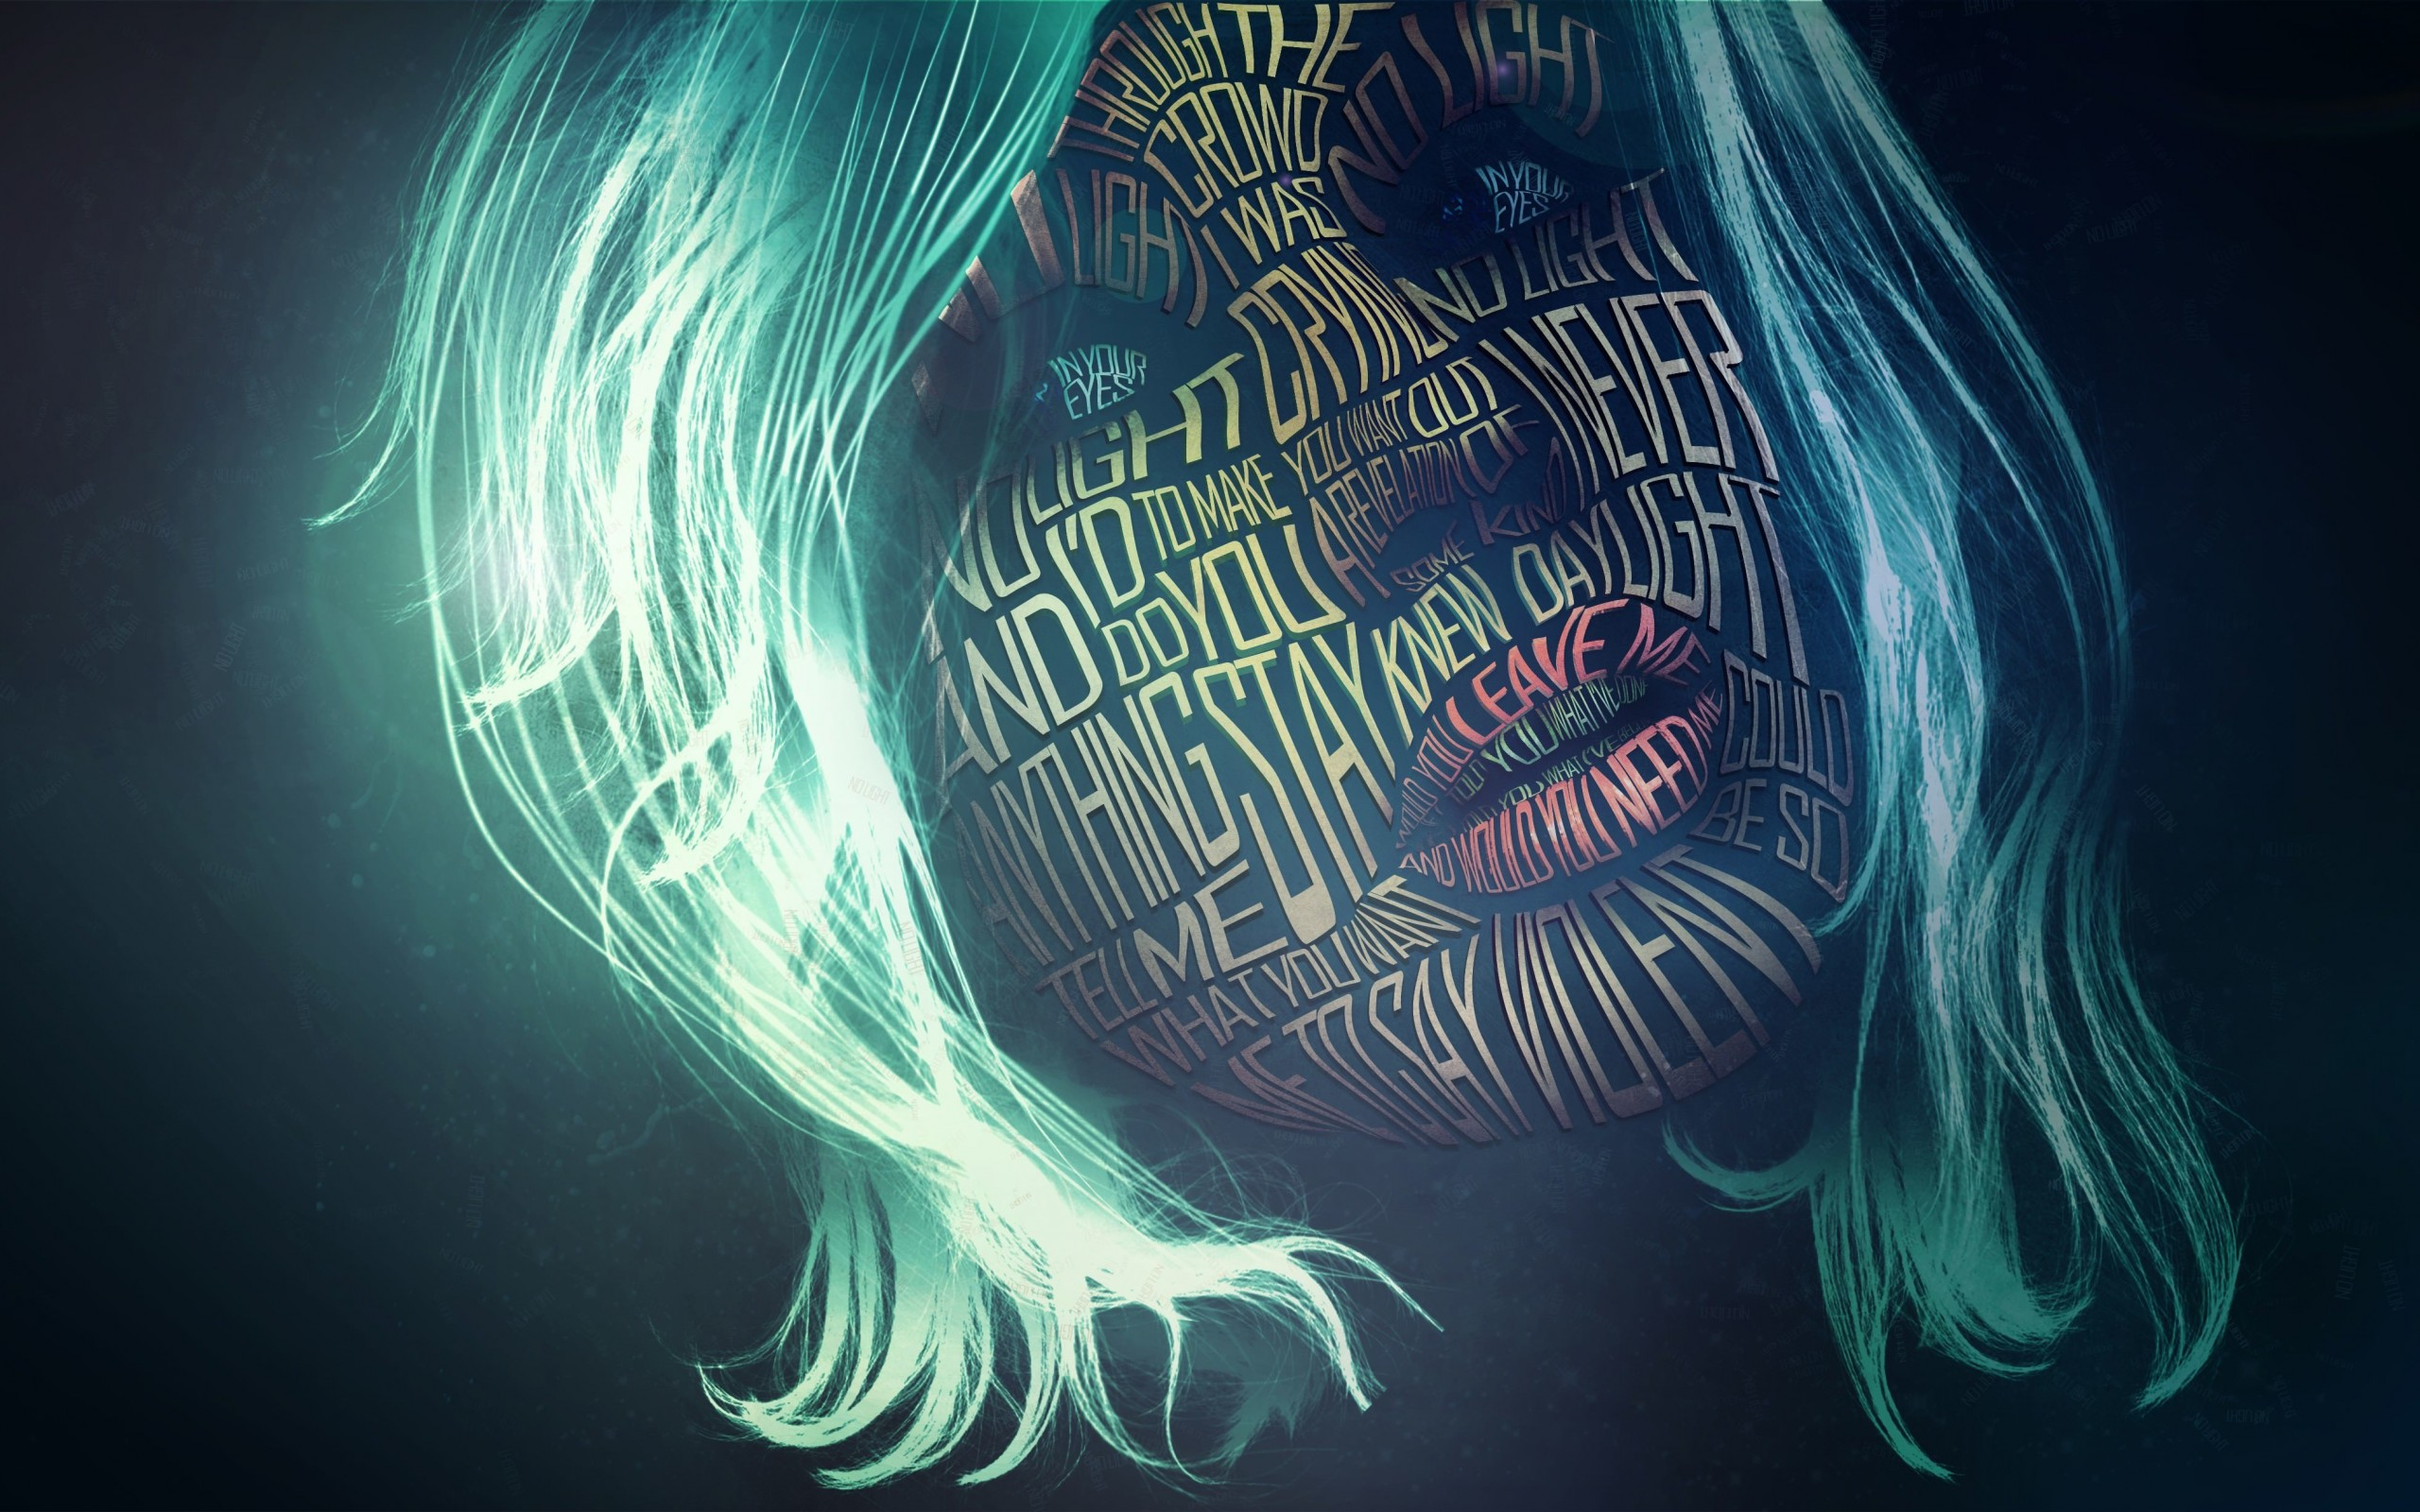 Woman Face Typography Wallpaper for Desktop 2560x1600